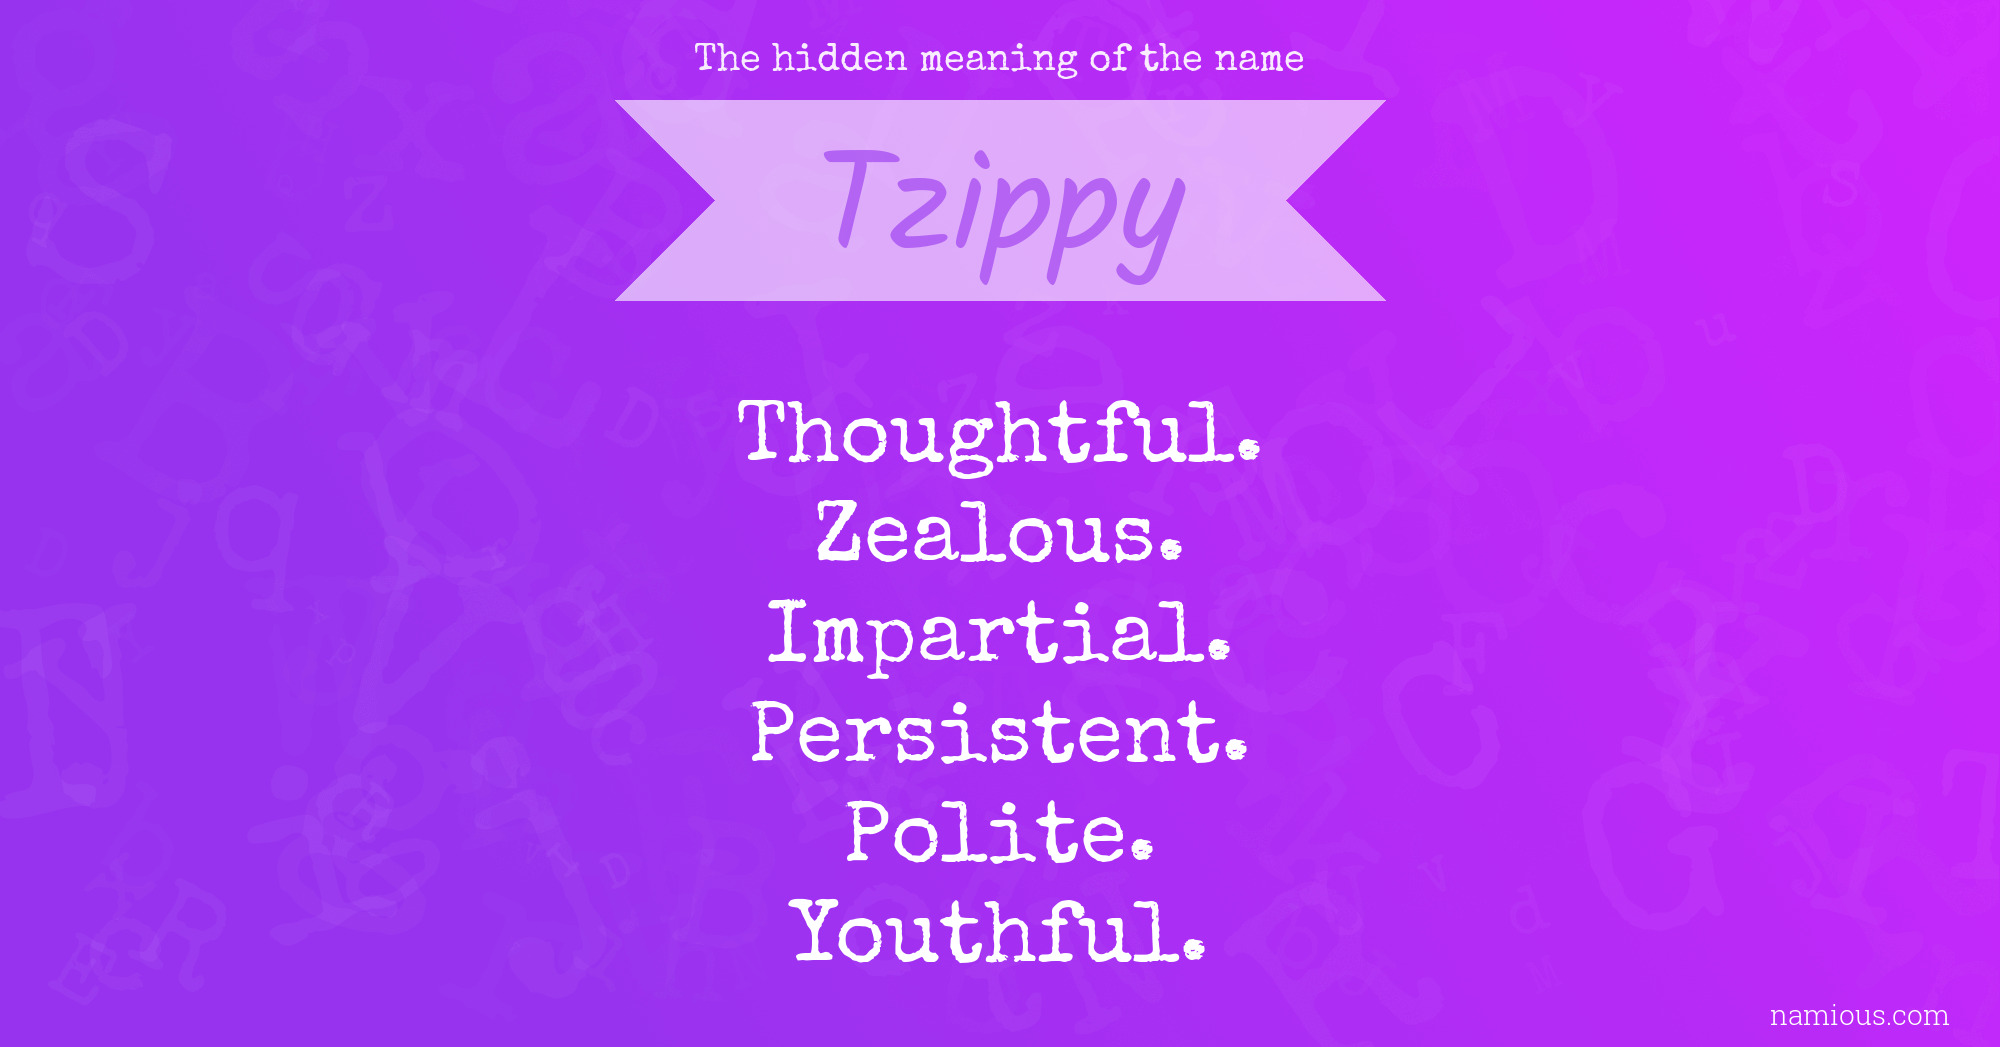 The hidden meaning of the name Tzippy   Namious